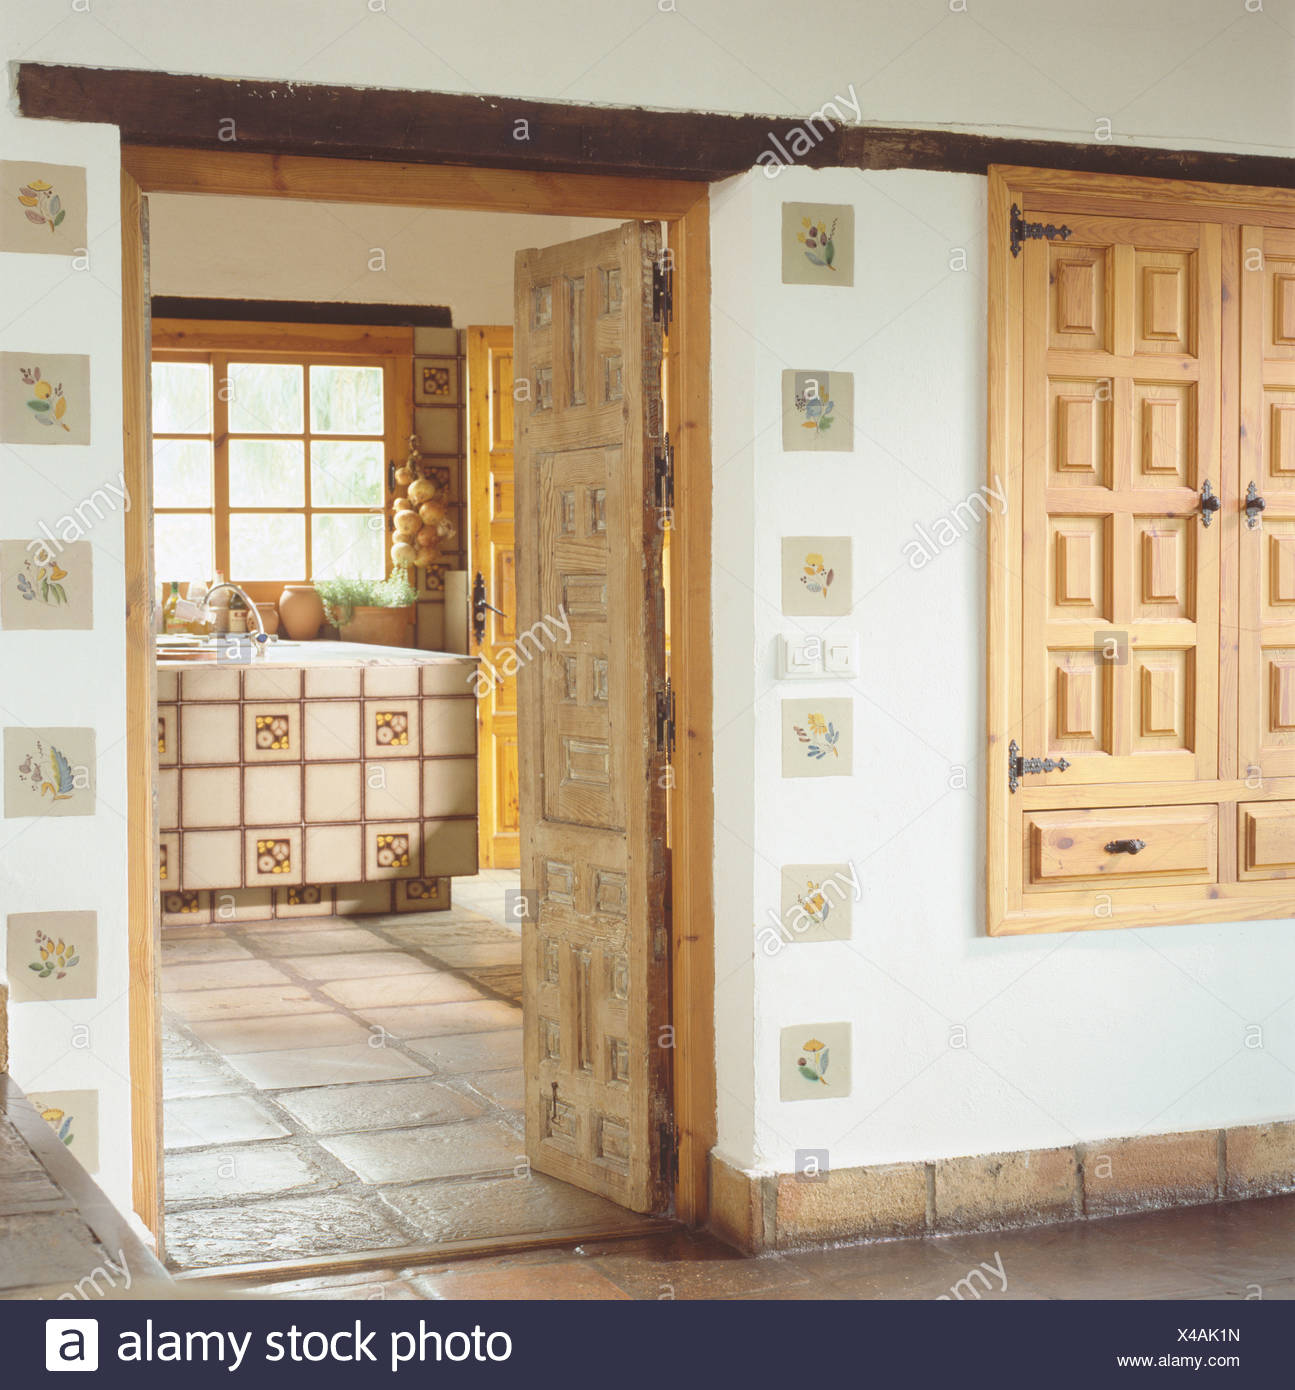 Kitchen Open Door Design Carved Wooden Cupboard Doors In Country Hall With Door Open Door To